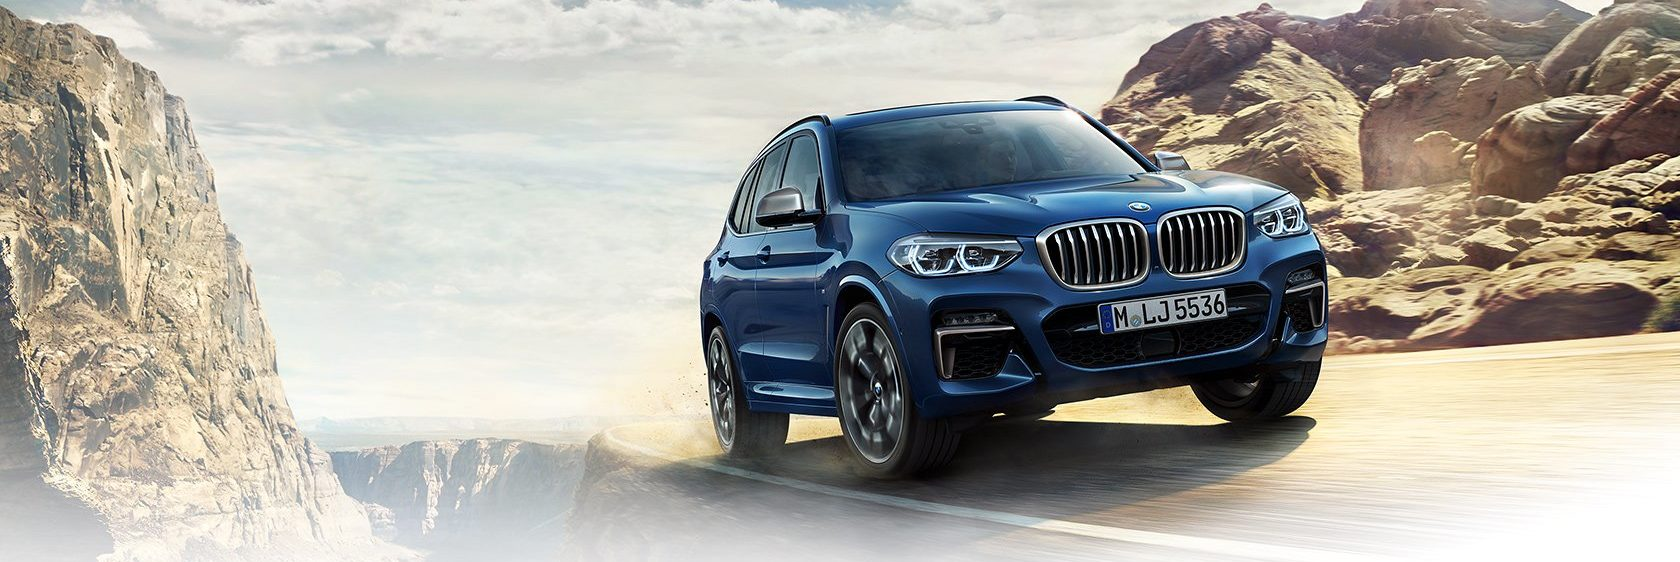 BMW X3 on the edge of a road by a mountain